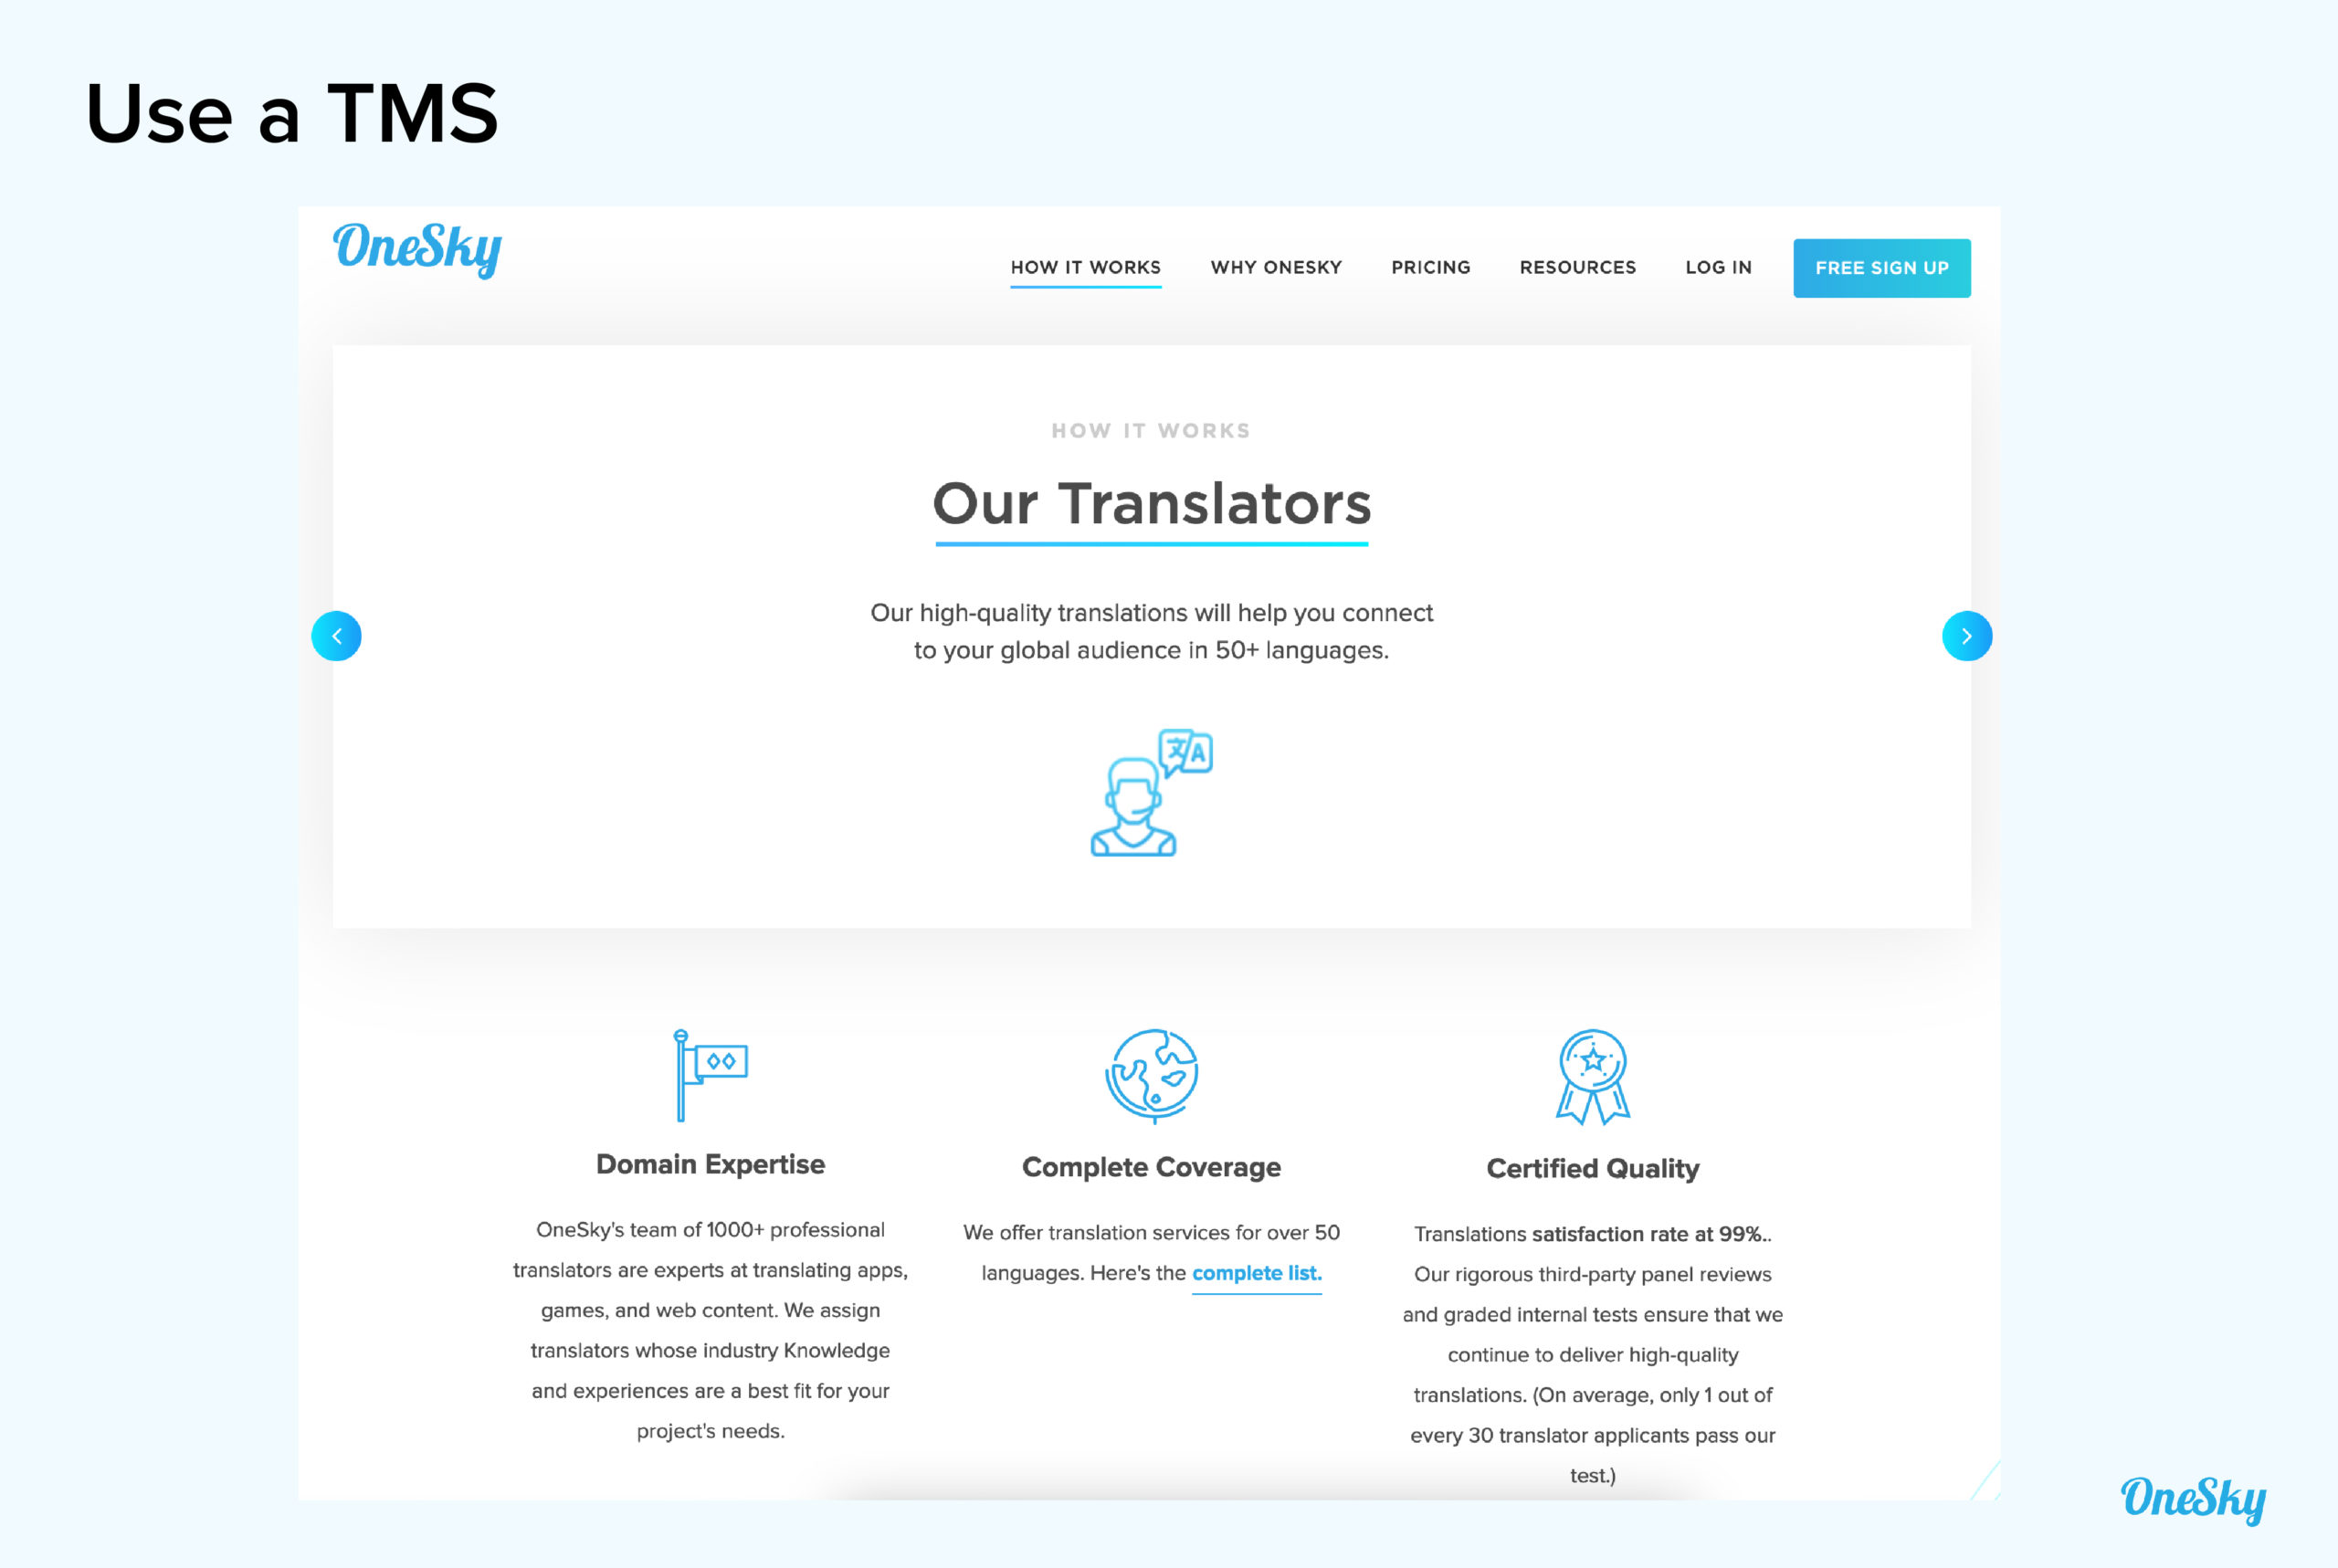 Using a TMS (Translation Management System)